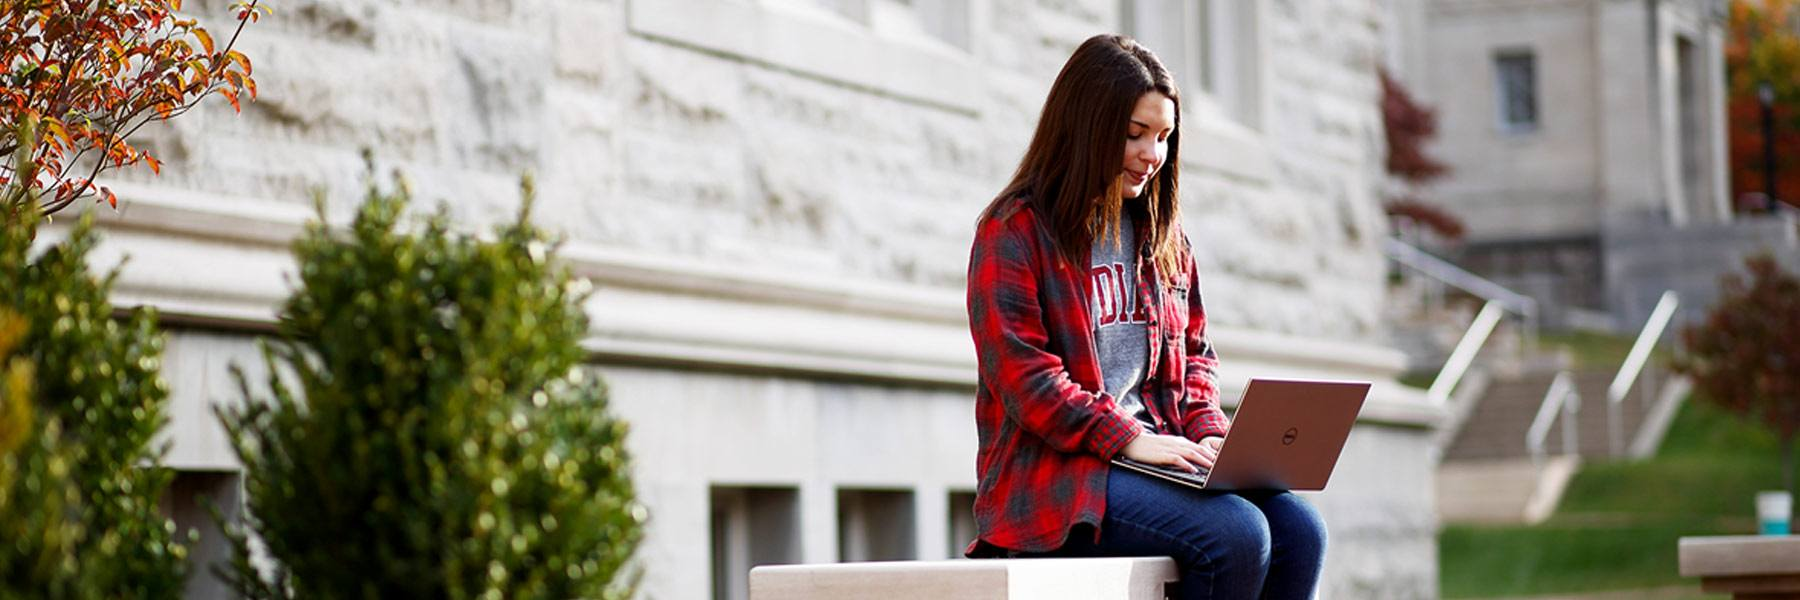 A woman sits on a stone bench outdoors and uses a laptop.